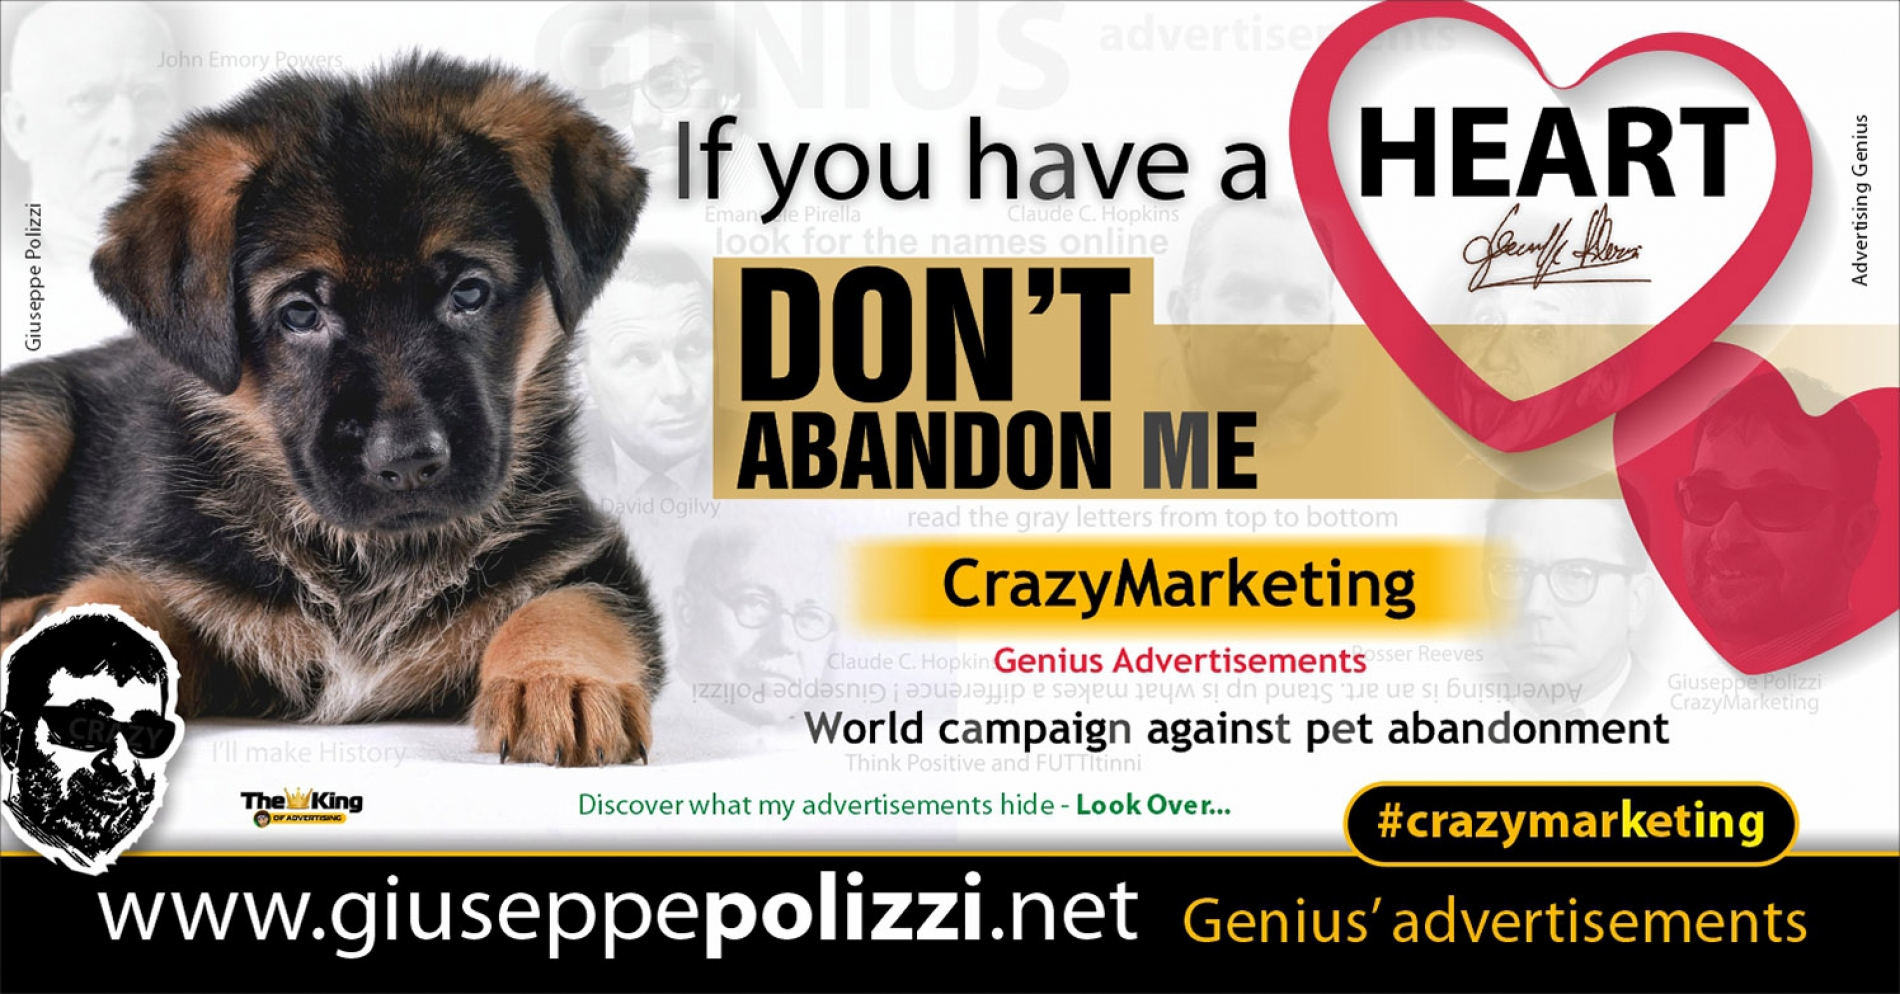 Giuseppe Polizzi CrazymarketingI If you have a heart advertisements eng